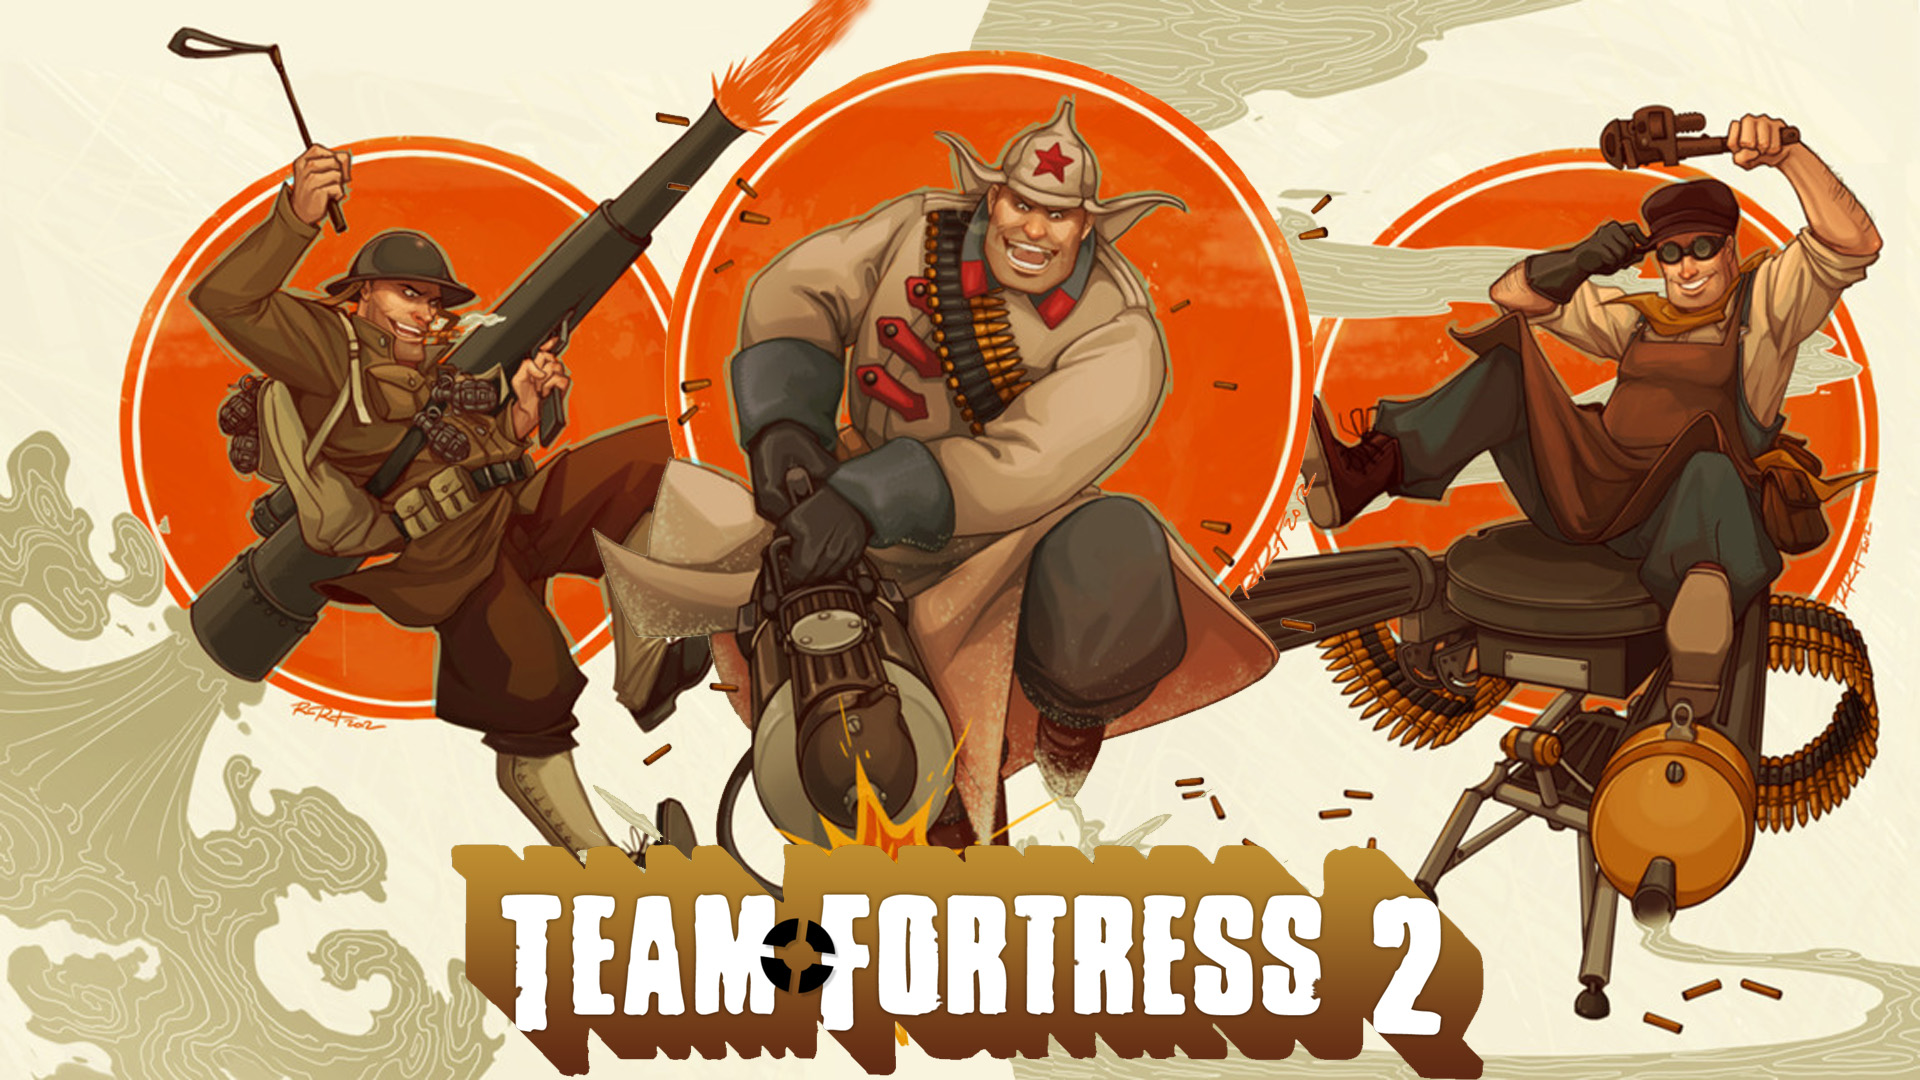 Awesome Set of 1980s Style Team Fortress 2 Characters